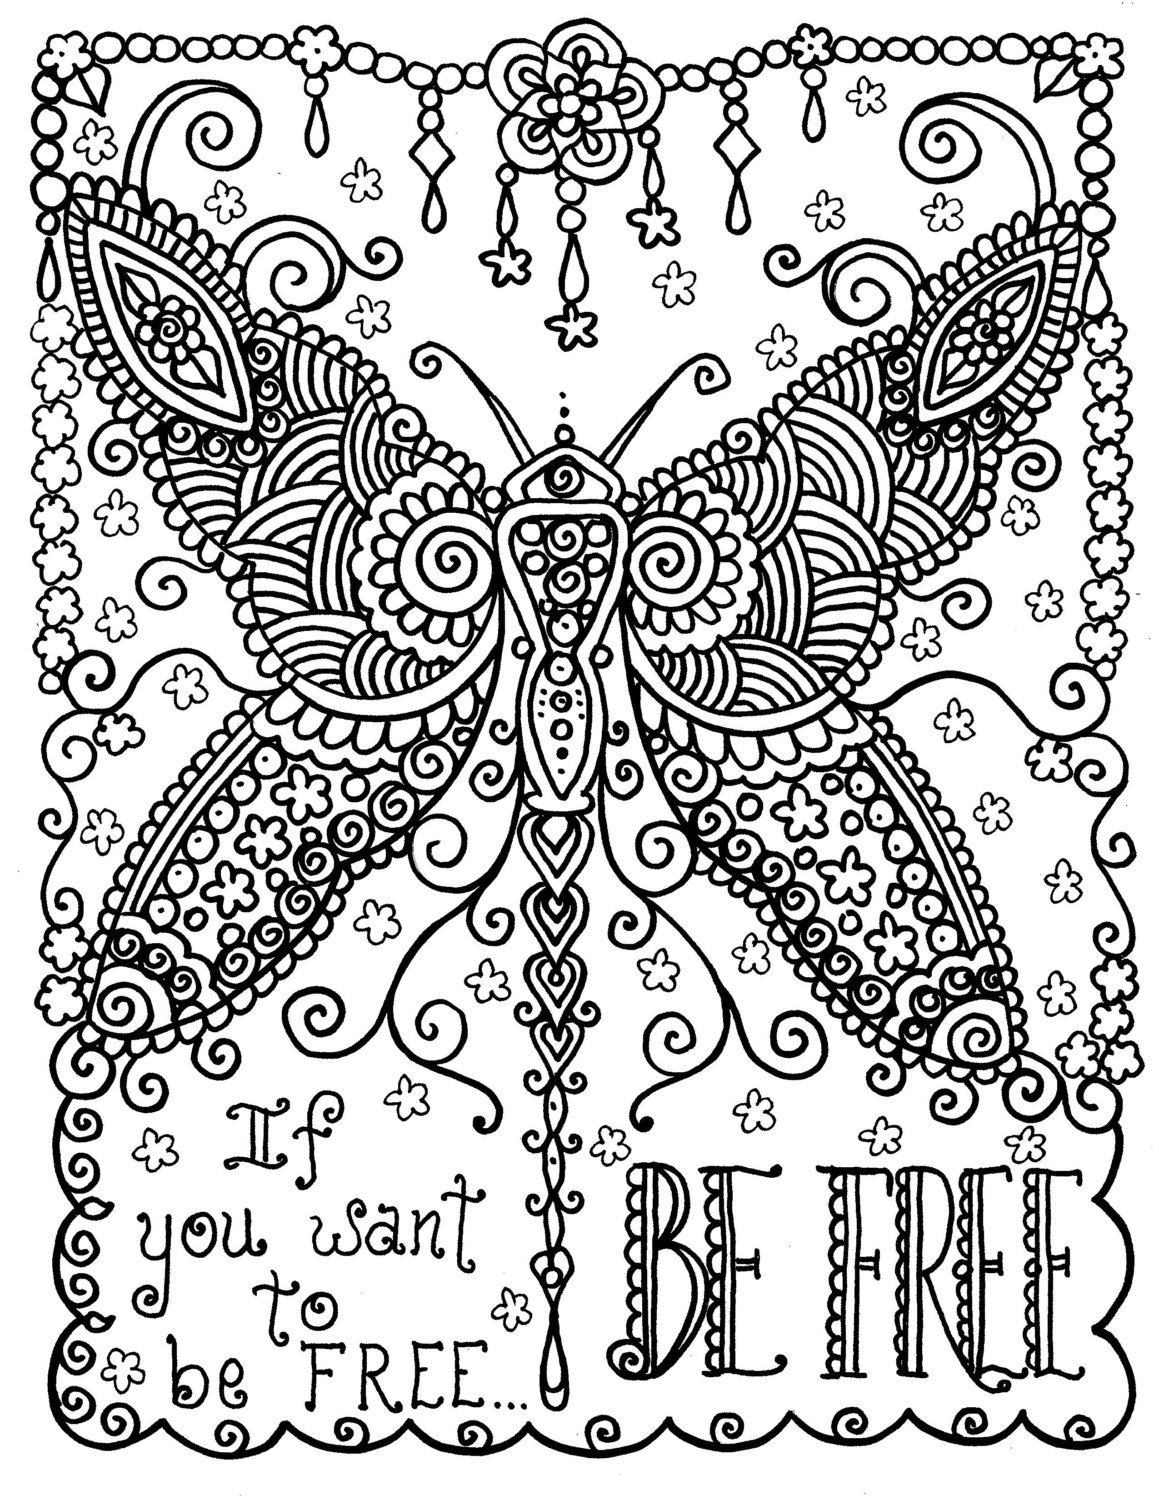 Crush image inside free printable inspirational coloring pages